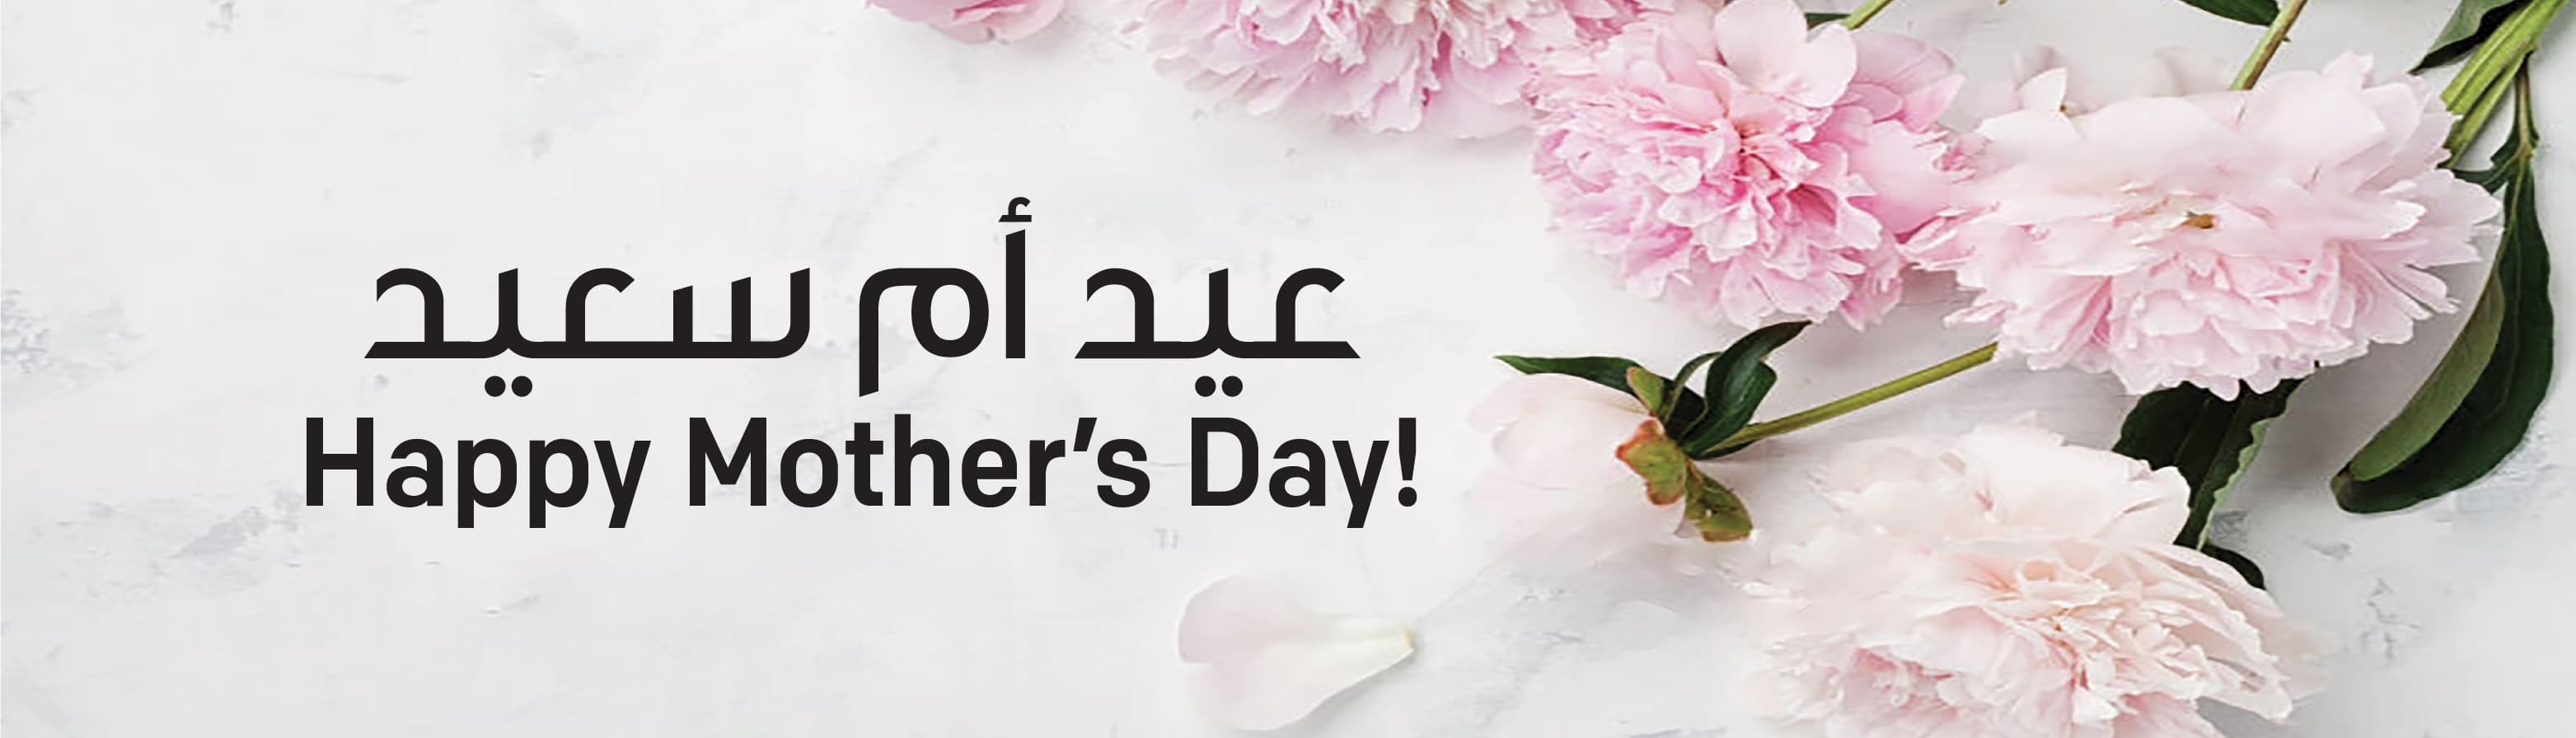 Mother's Day – How to Celebrate in the Kingdom of Bahrain?